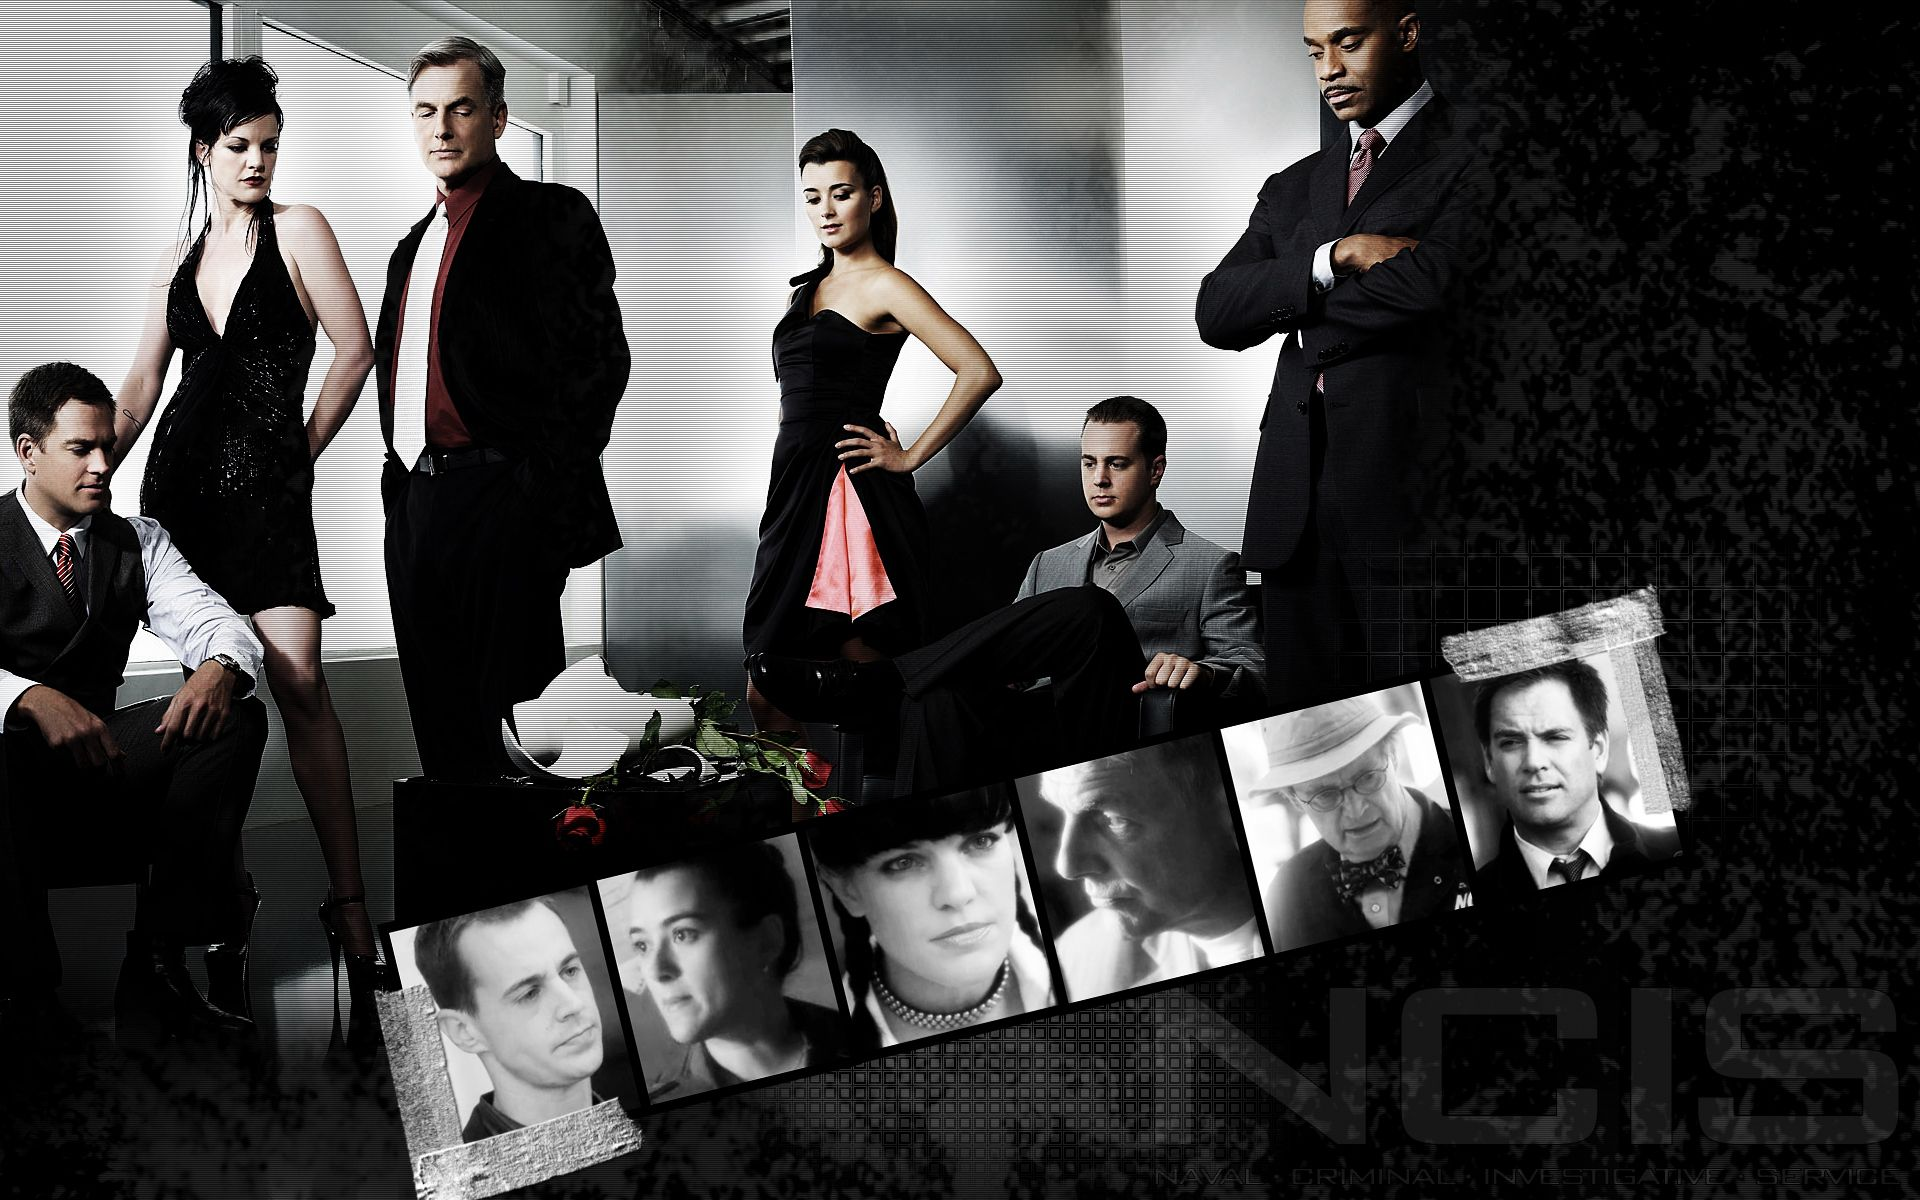 1920x1200 NCIS Wallpaper - Wallpapers Browse